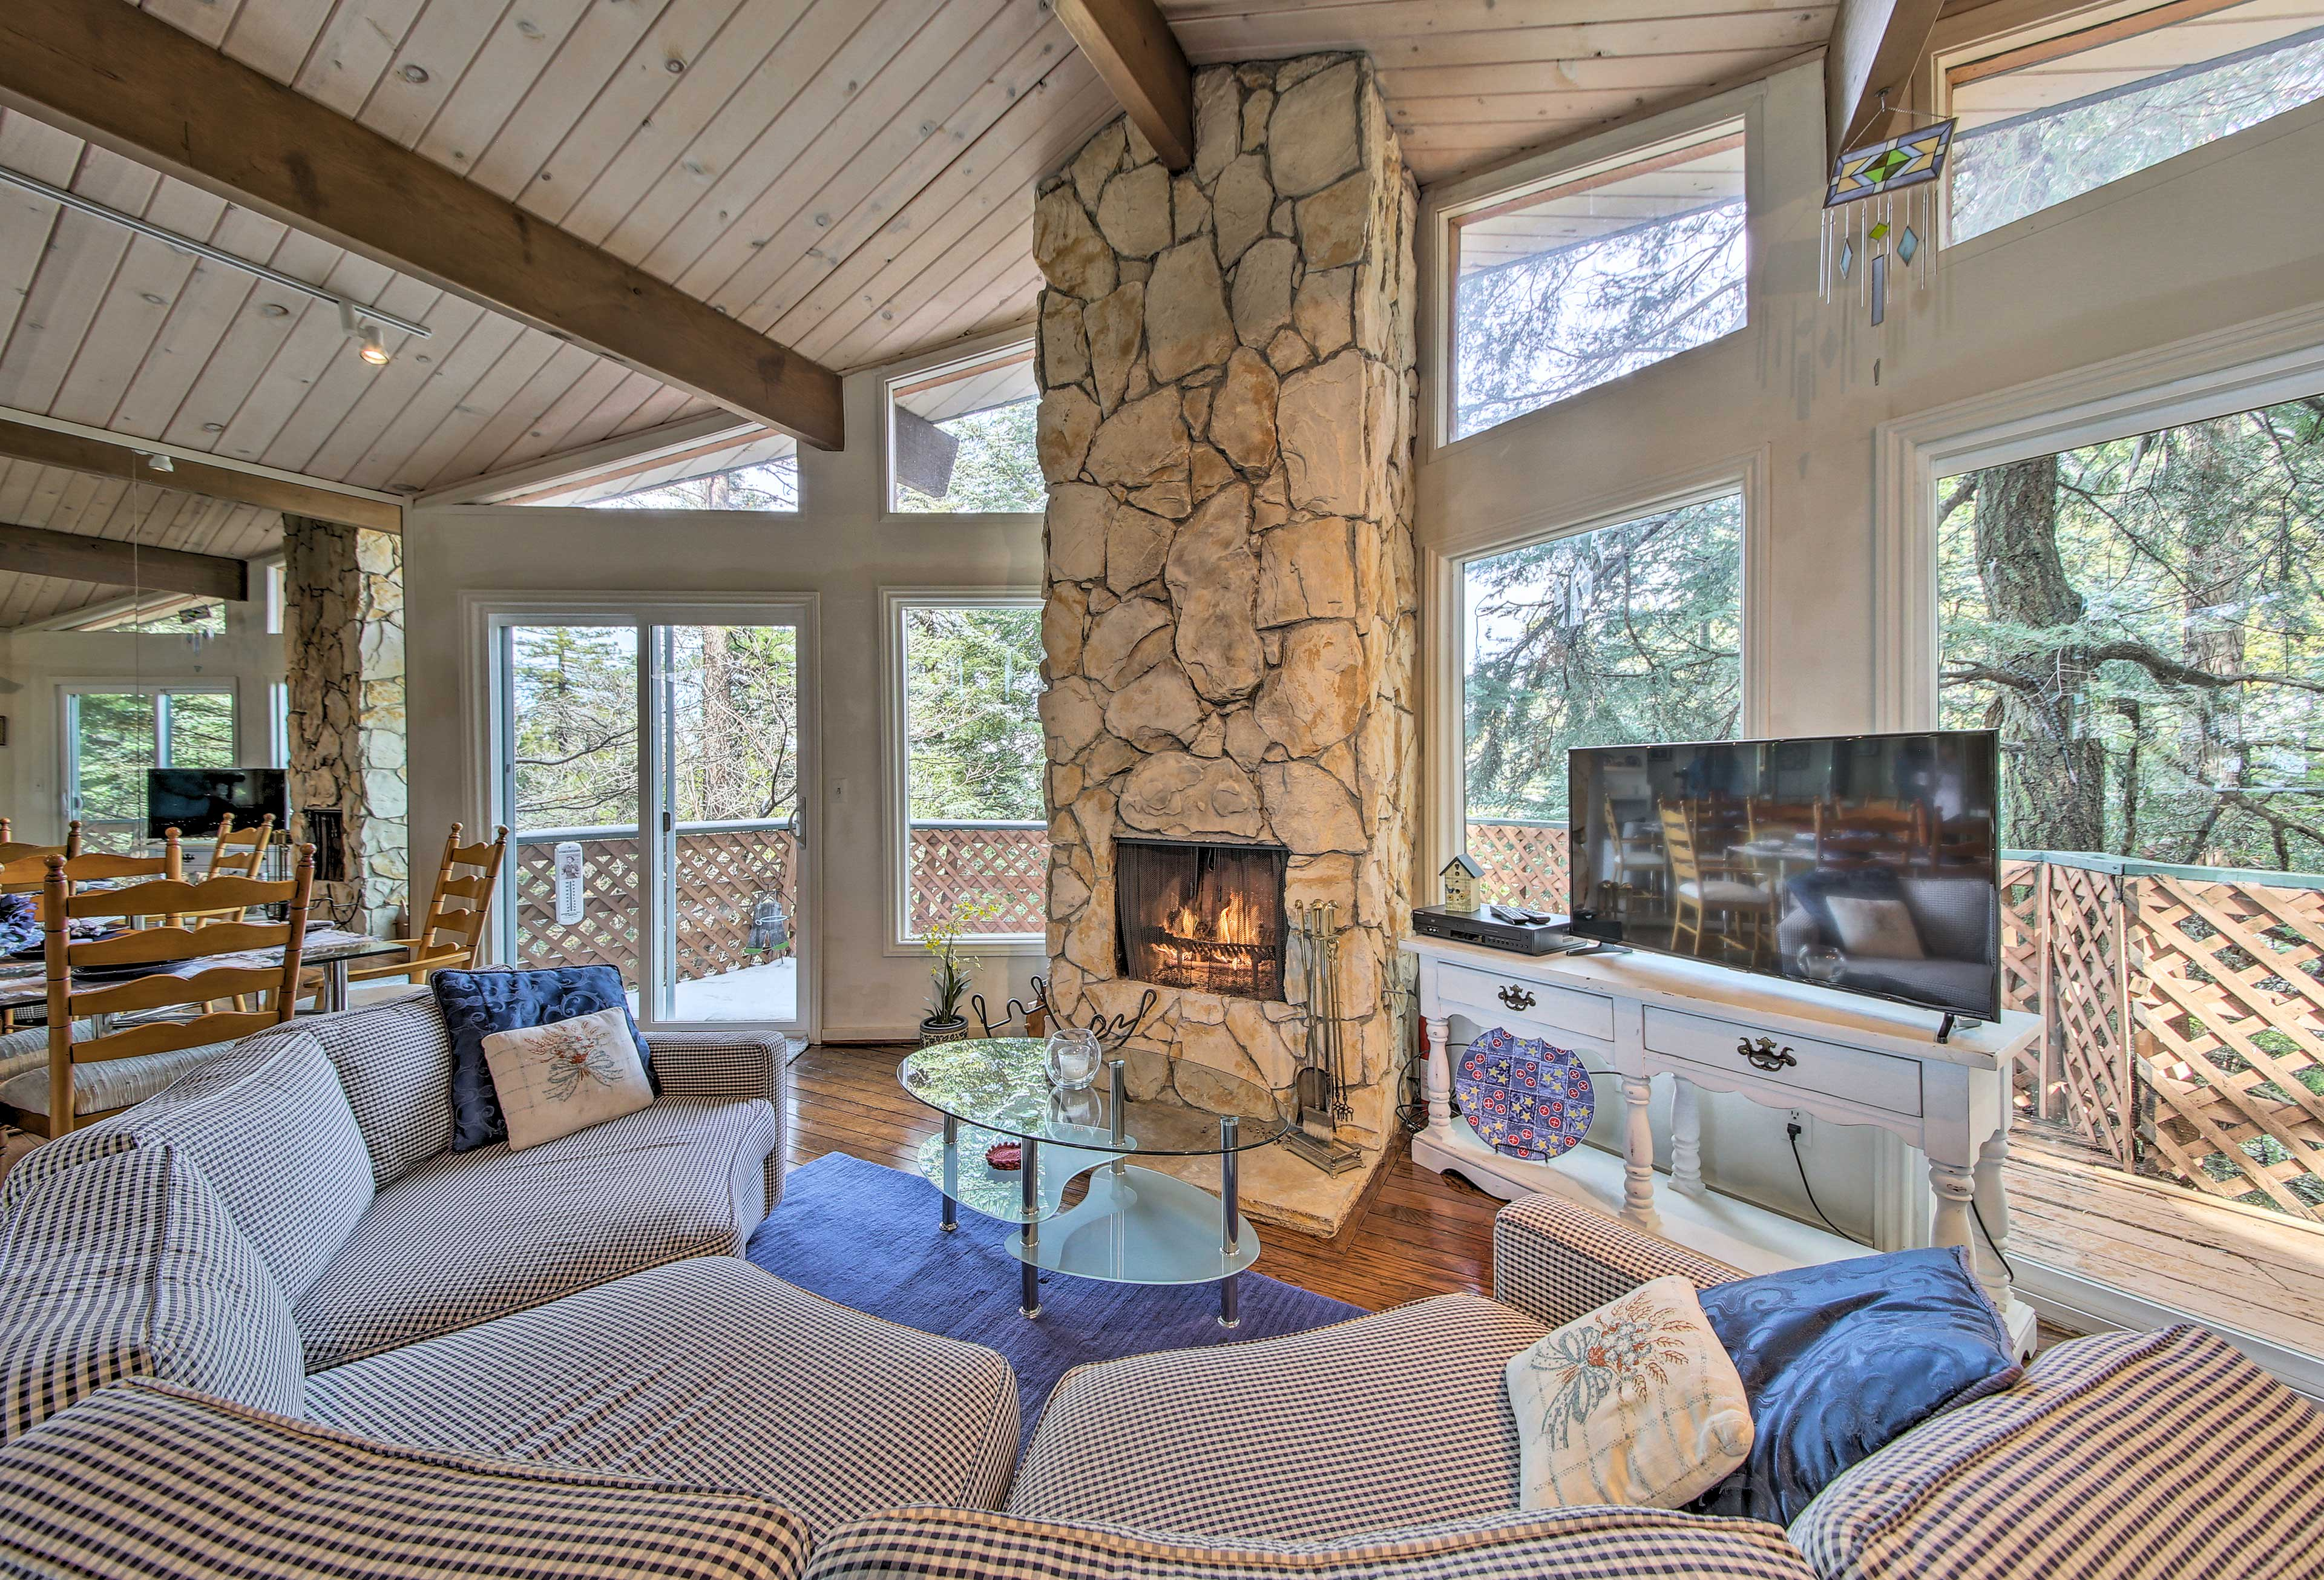 Utilize the gas fireplace on those cooler California evenings!